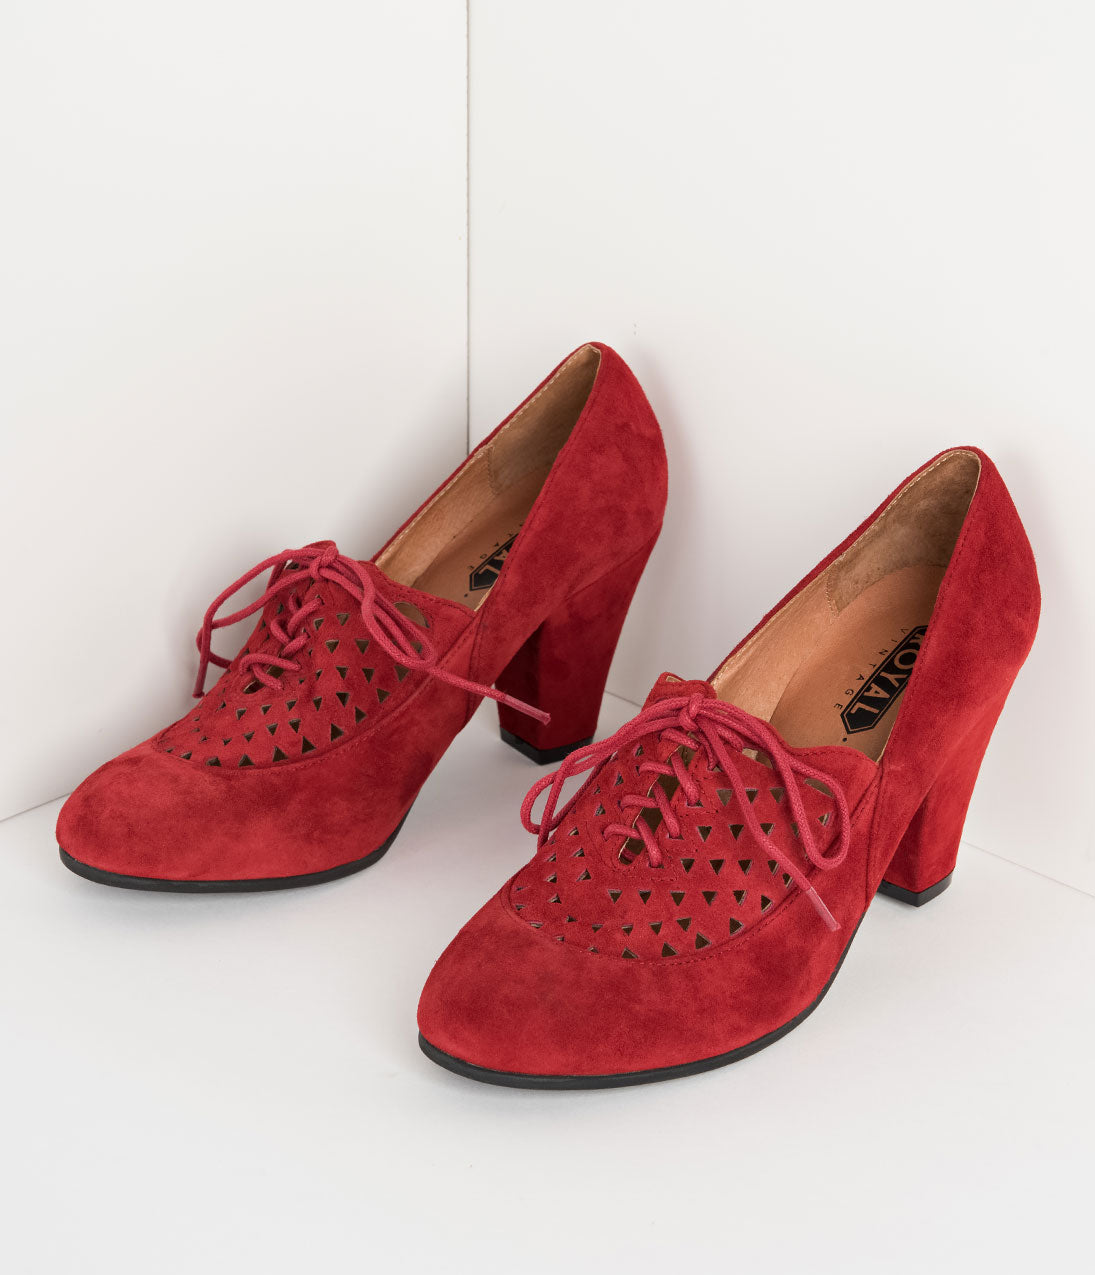 Vintage Style Shoes, Vintage Inspired Shoes Royal Vintage 1940S Style Red Suede Leather Cutout Alice Oxford Heels $150.00 AT vintagedancer.com